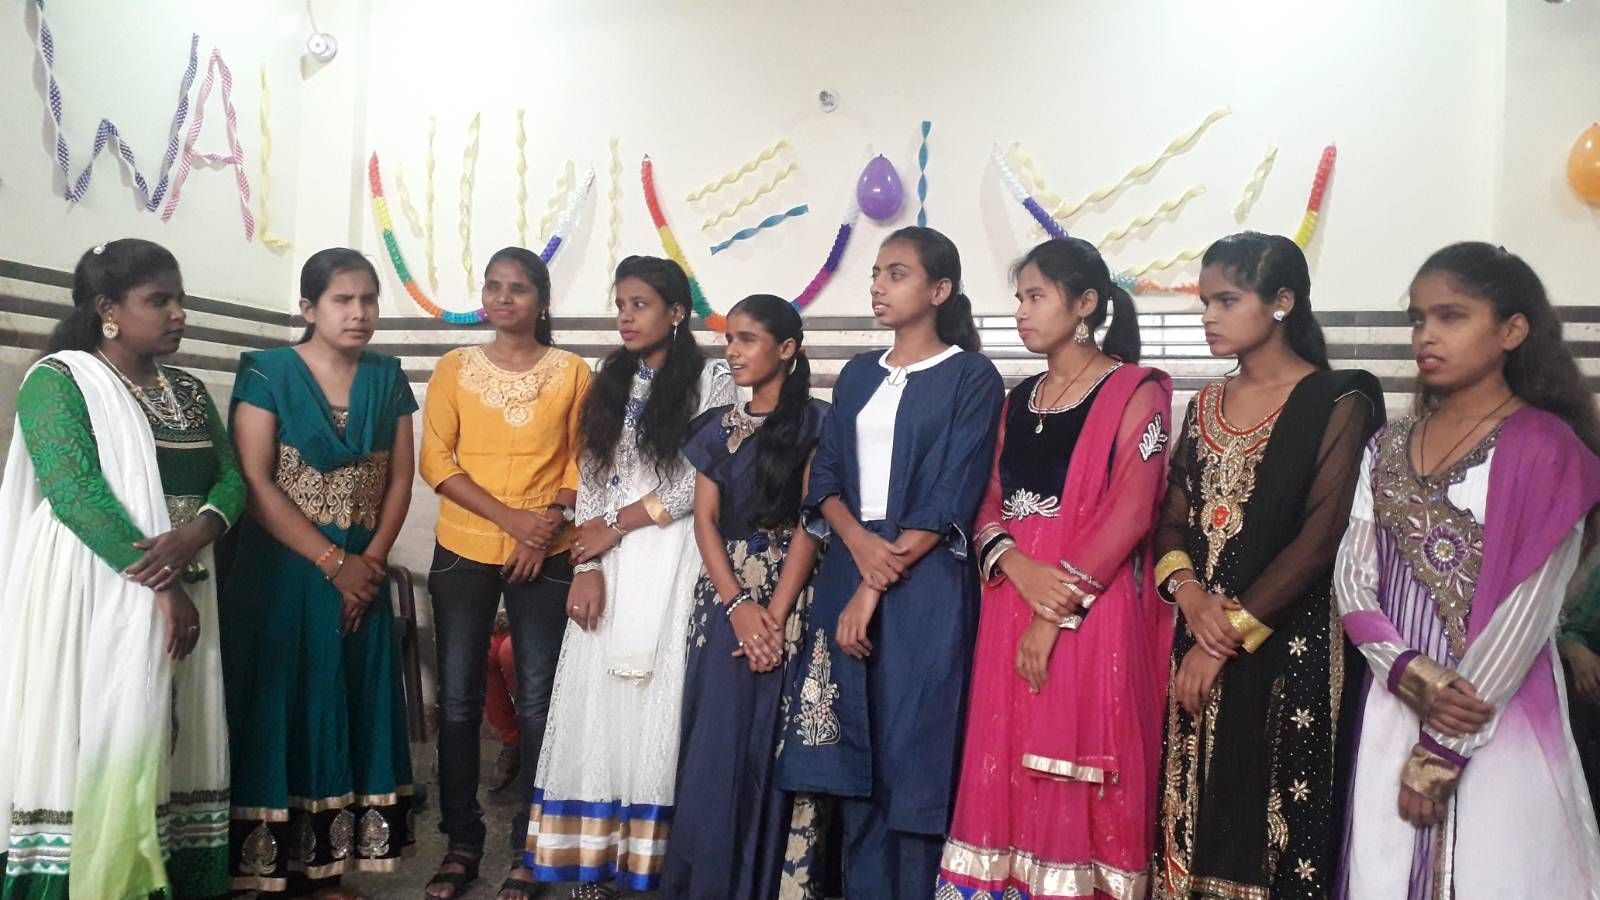 group soung sung by the visually impaired girls